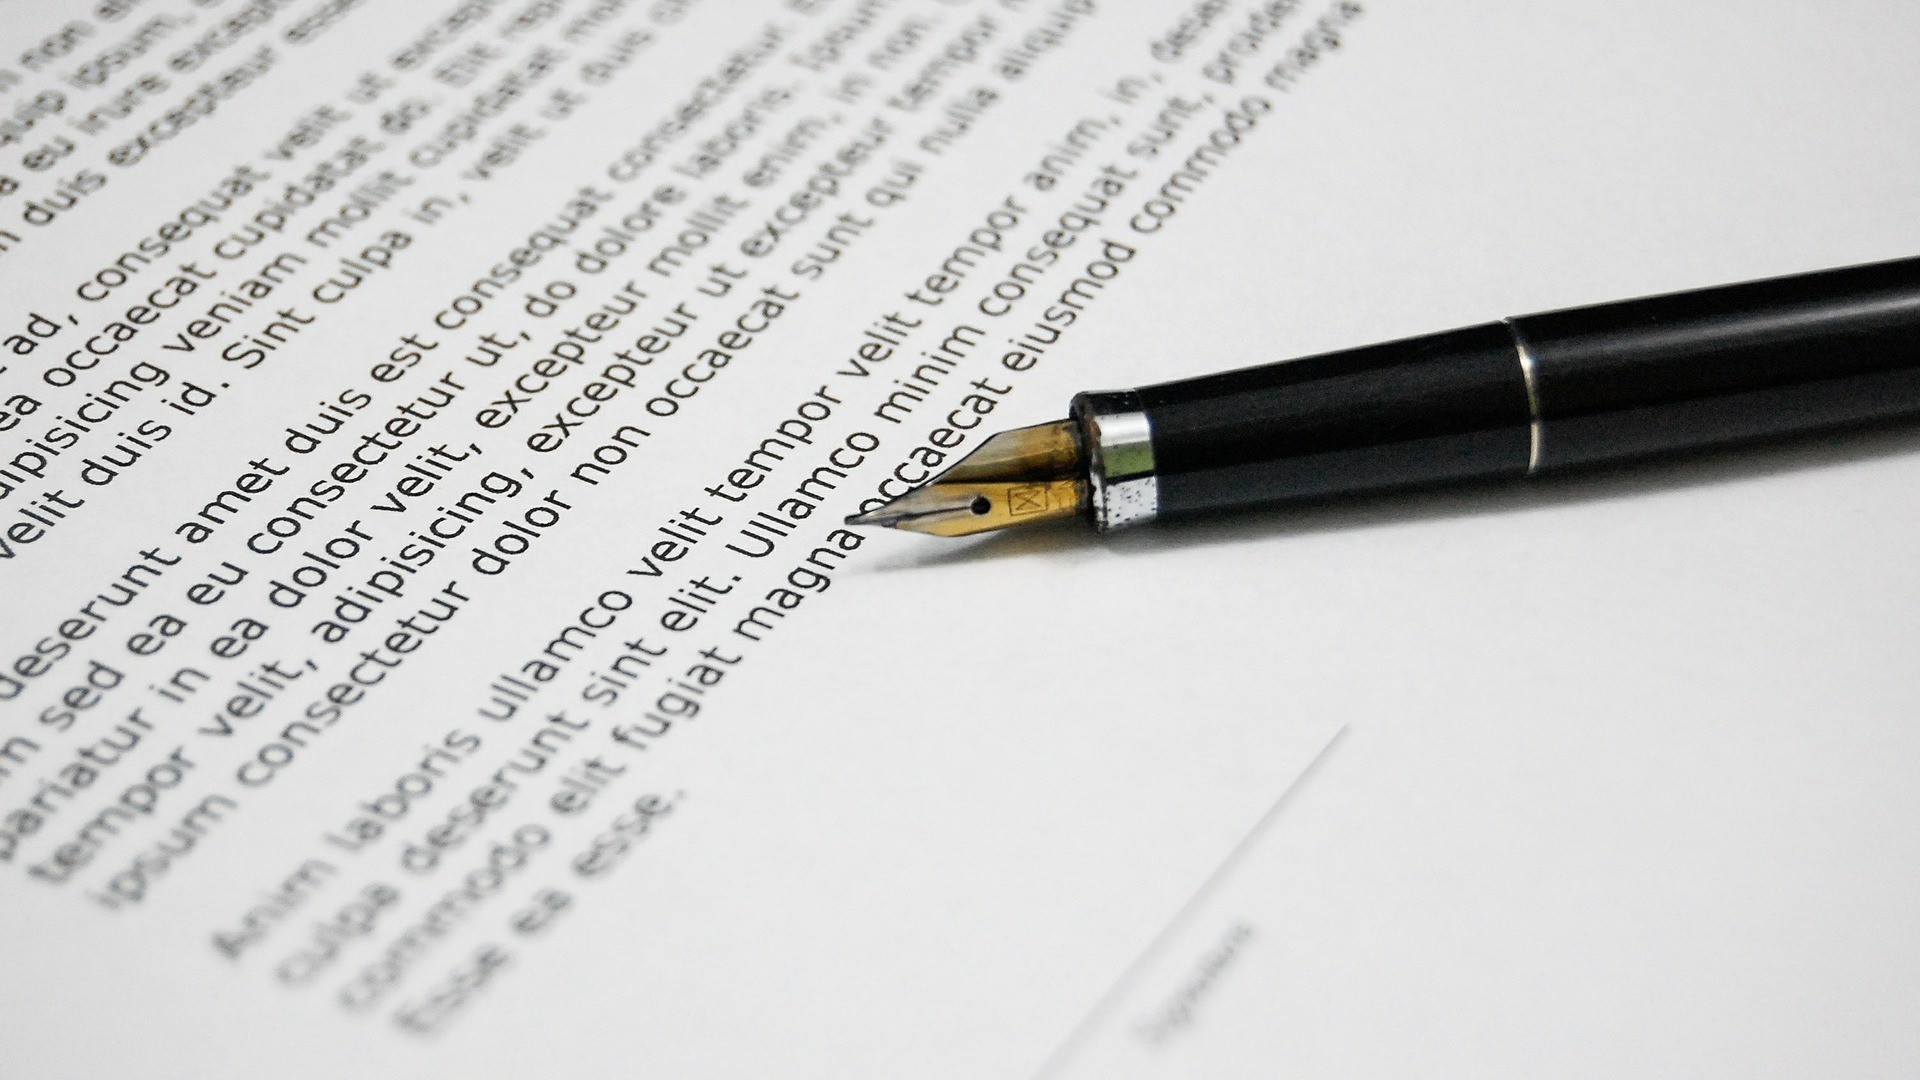 Pen resting on contract